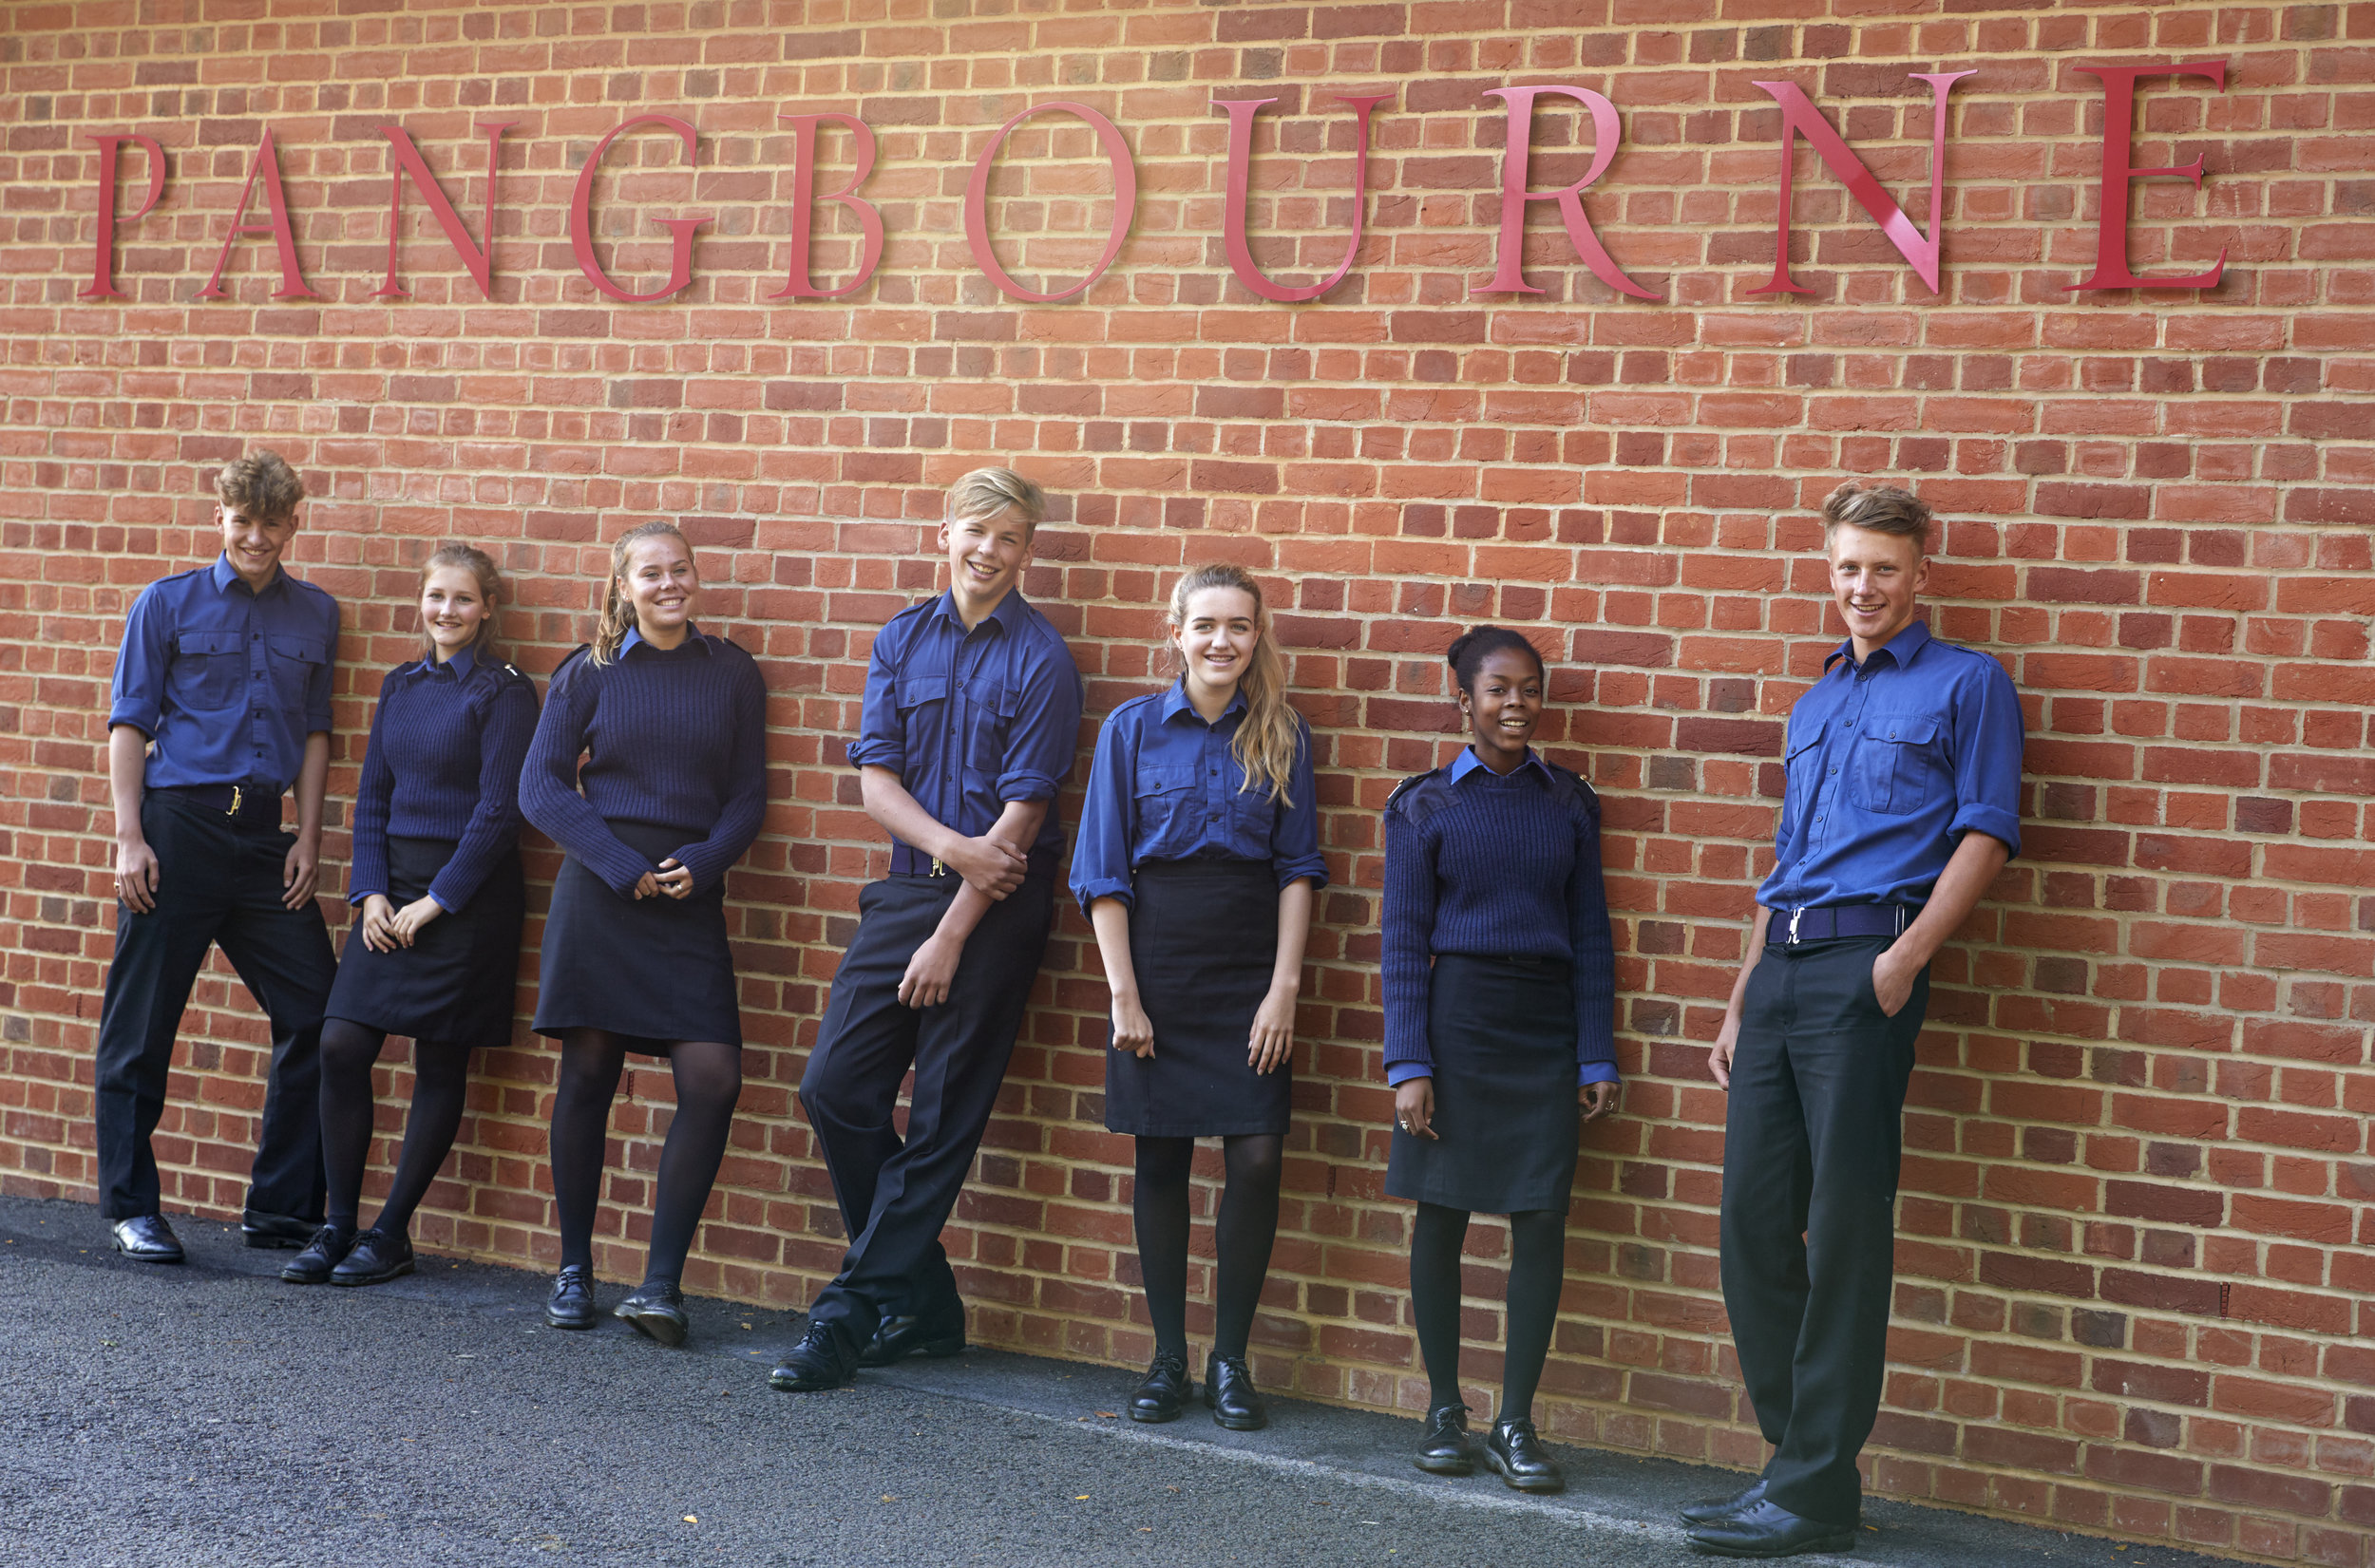 607_Pangbourne day 210949_preview.jpg